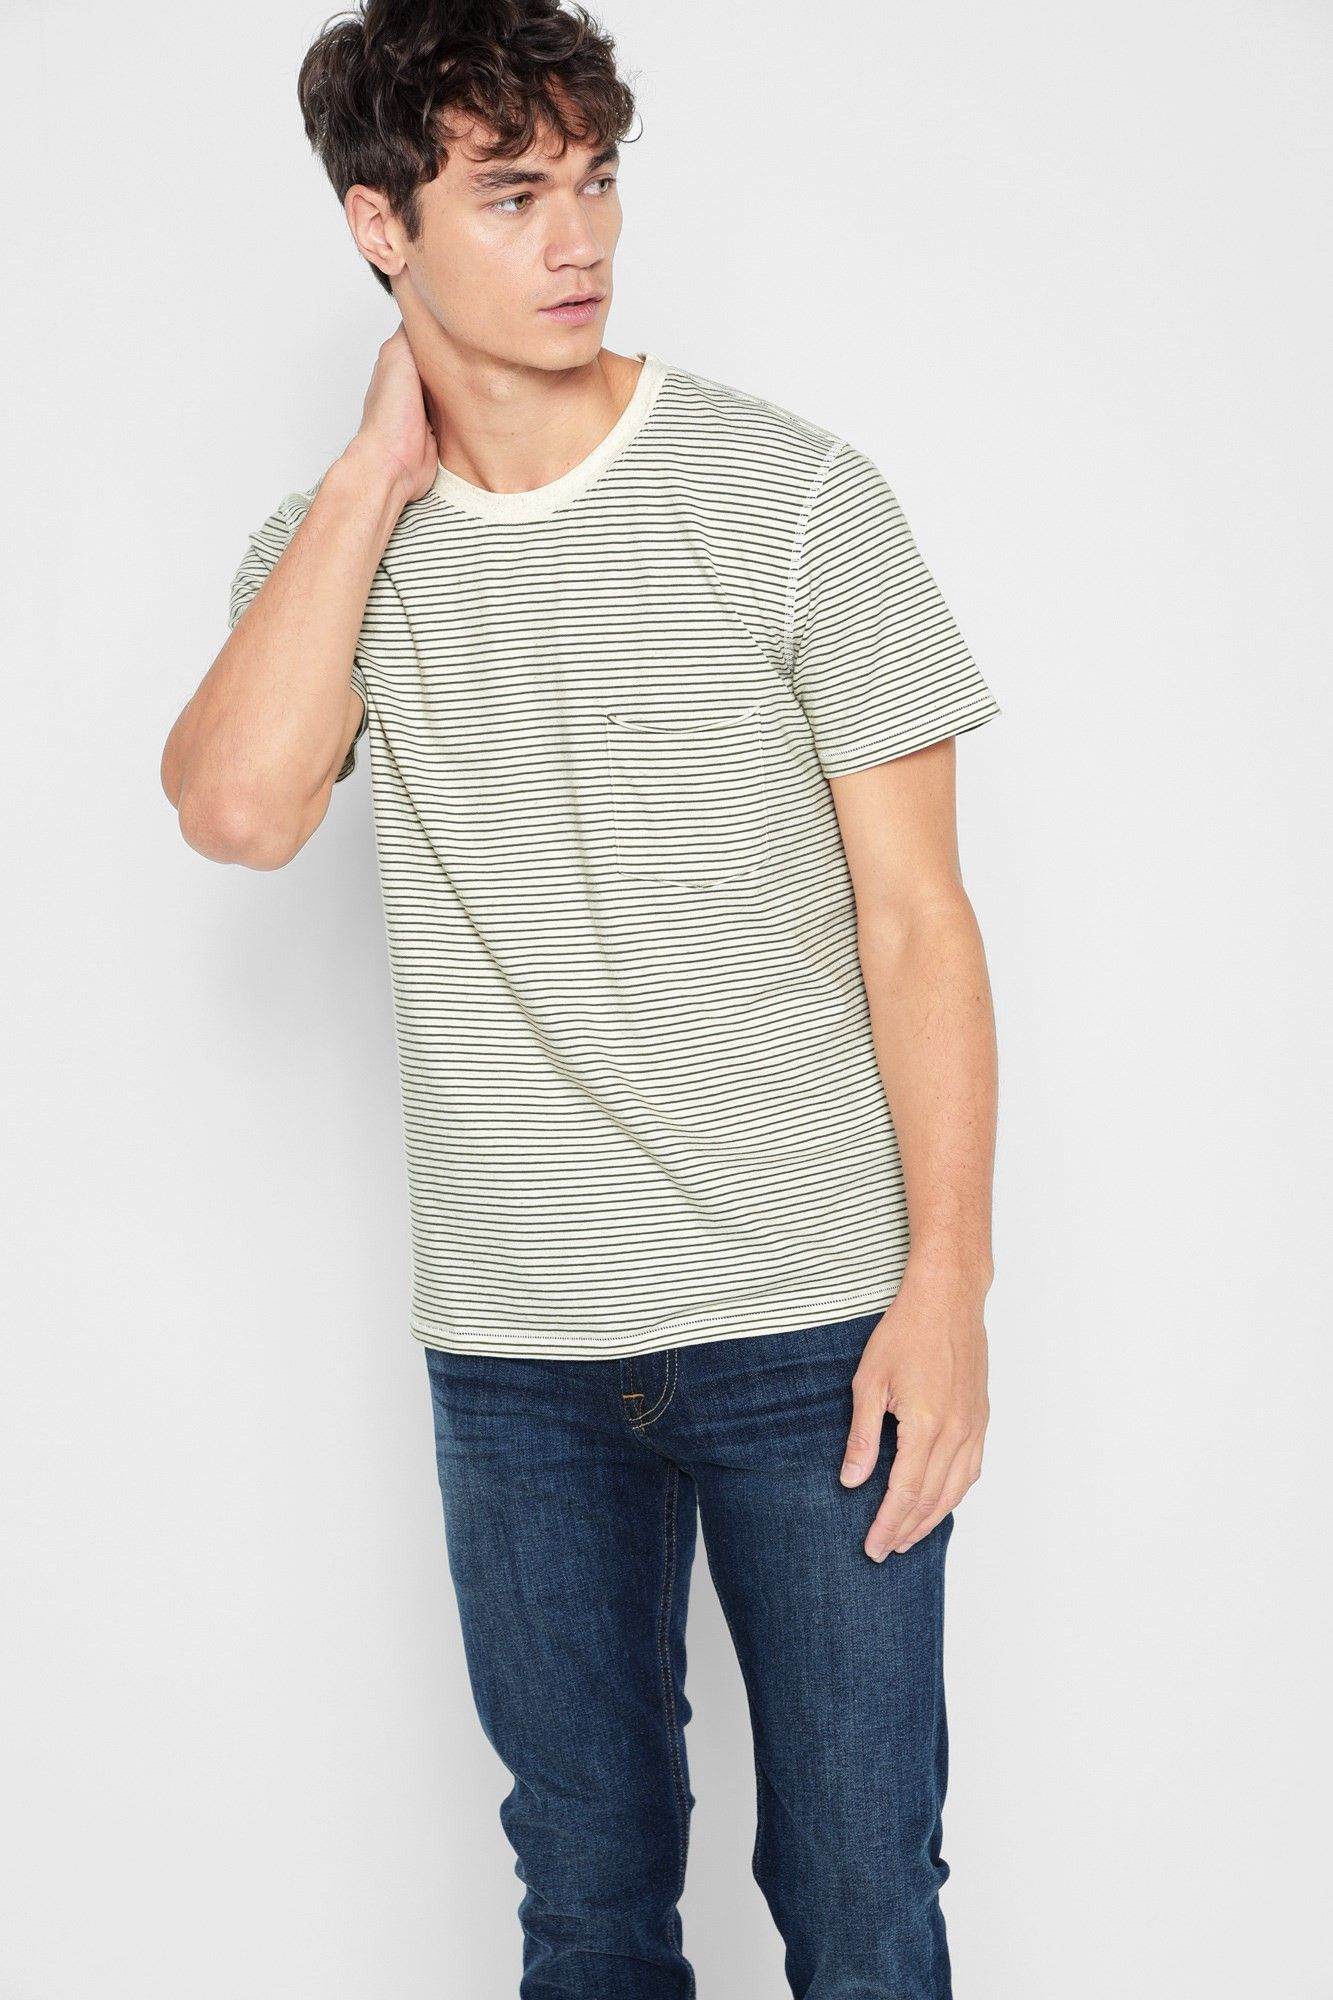 6437744c37 7 FOR ALL MANKIND Short Sleeve Striped Ringer Tee in Ecos. #7forallmankind  #cloth #